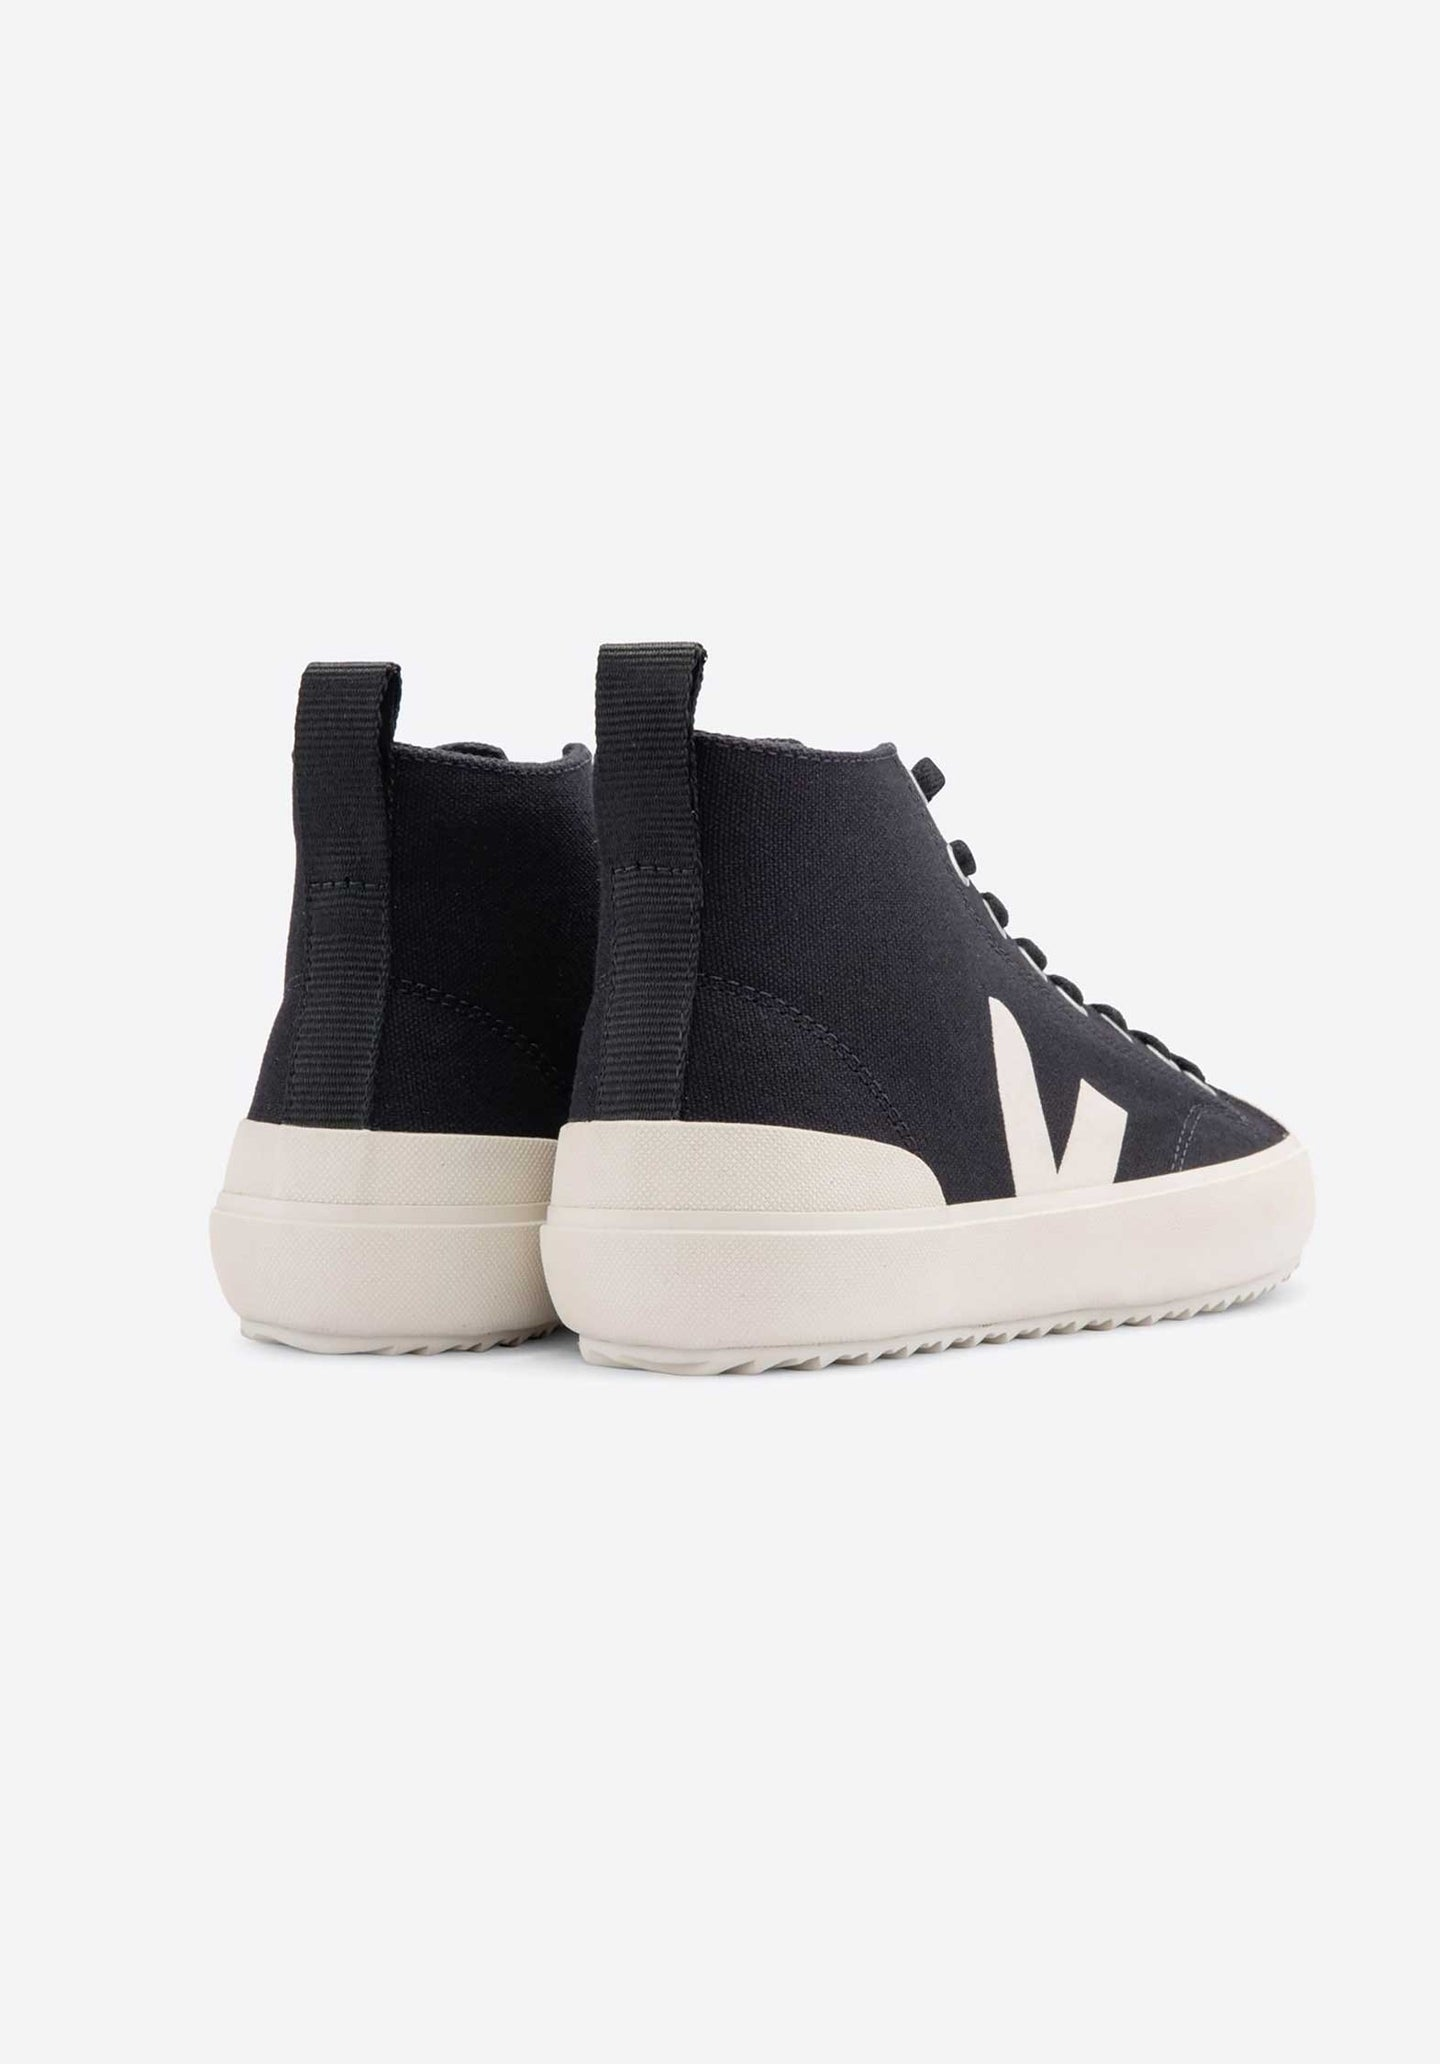 Nova Organic Cotton High Top Sneakers Black-Pierre